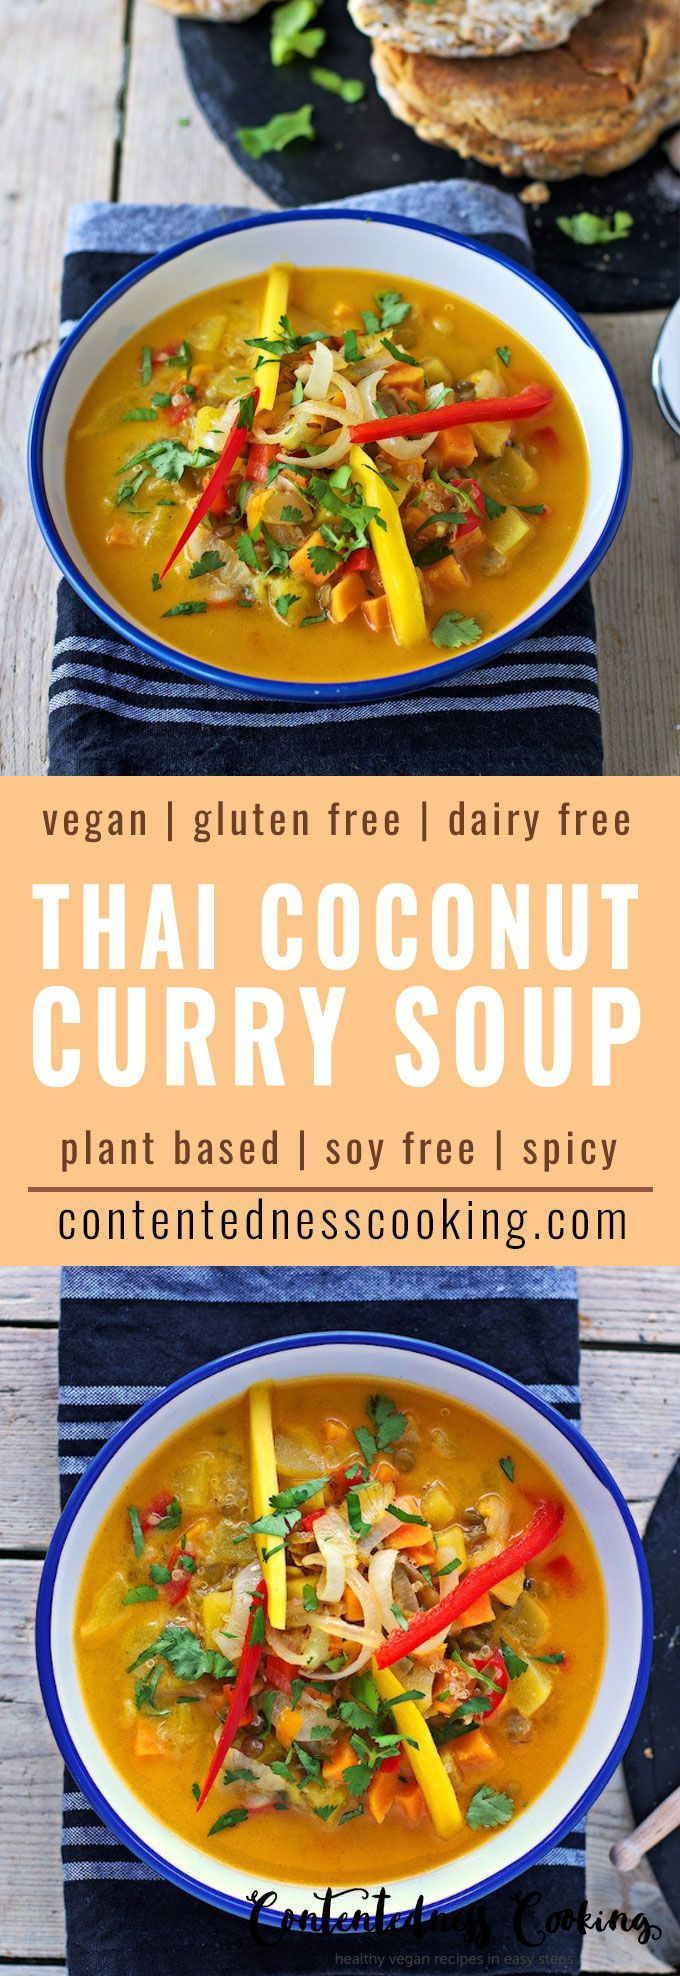 This Vegan Thai Coconut Soup comes with an easy Naan bread recipe. Both recipes are vegan and gluten free. Mango and coconut give this soup a tropical twist while quinoa and lentils add protein and heartiness.